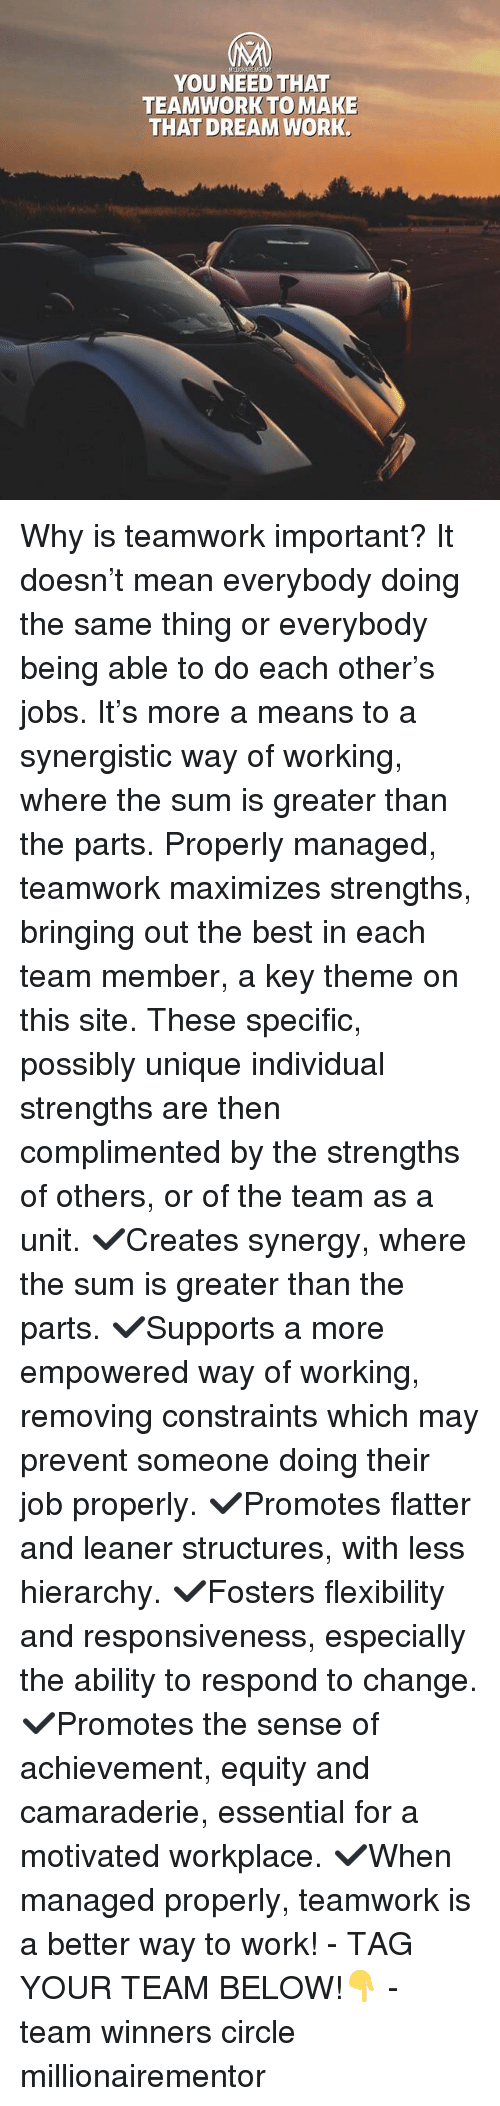 Memes, Work, and Best: YOU NEED THAT  TEAMWORK TO MAKE  THAT DREAM WORK Why is teamwork important? It doesn't mean everybody doing the same thing or everybody being able to do each other's jobs. It's more a means to a synergistic way of working, where the sum is greater than the parts. Properly managed, teamwork maximizes strengths, bringing out the best in each team member, a key theme on this site. These specific, possibly unique individual strengths are then complimented by the strengths of others, or of the team as a unit. ✔️Creates synergy, where the sum is greater than the parts. ✔️Supports a more empowered way of working, removing constraints which may prevent someone doing their job properly. ✔️Promotes flatter and leaner structures, with less hierarchy. ✔️Fosters flexibility and responsiveness, especially the ability to respond to change. ✔️Promotes the sense of achievement, equity and camaraderie, essential for a motivated workplace. ✔️When managed properly, teamwork is a better way to work! - TAG YOUR TEAM BELOW!👇 - team winners circle millionairementor